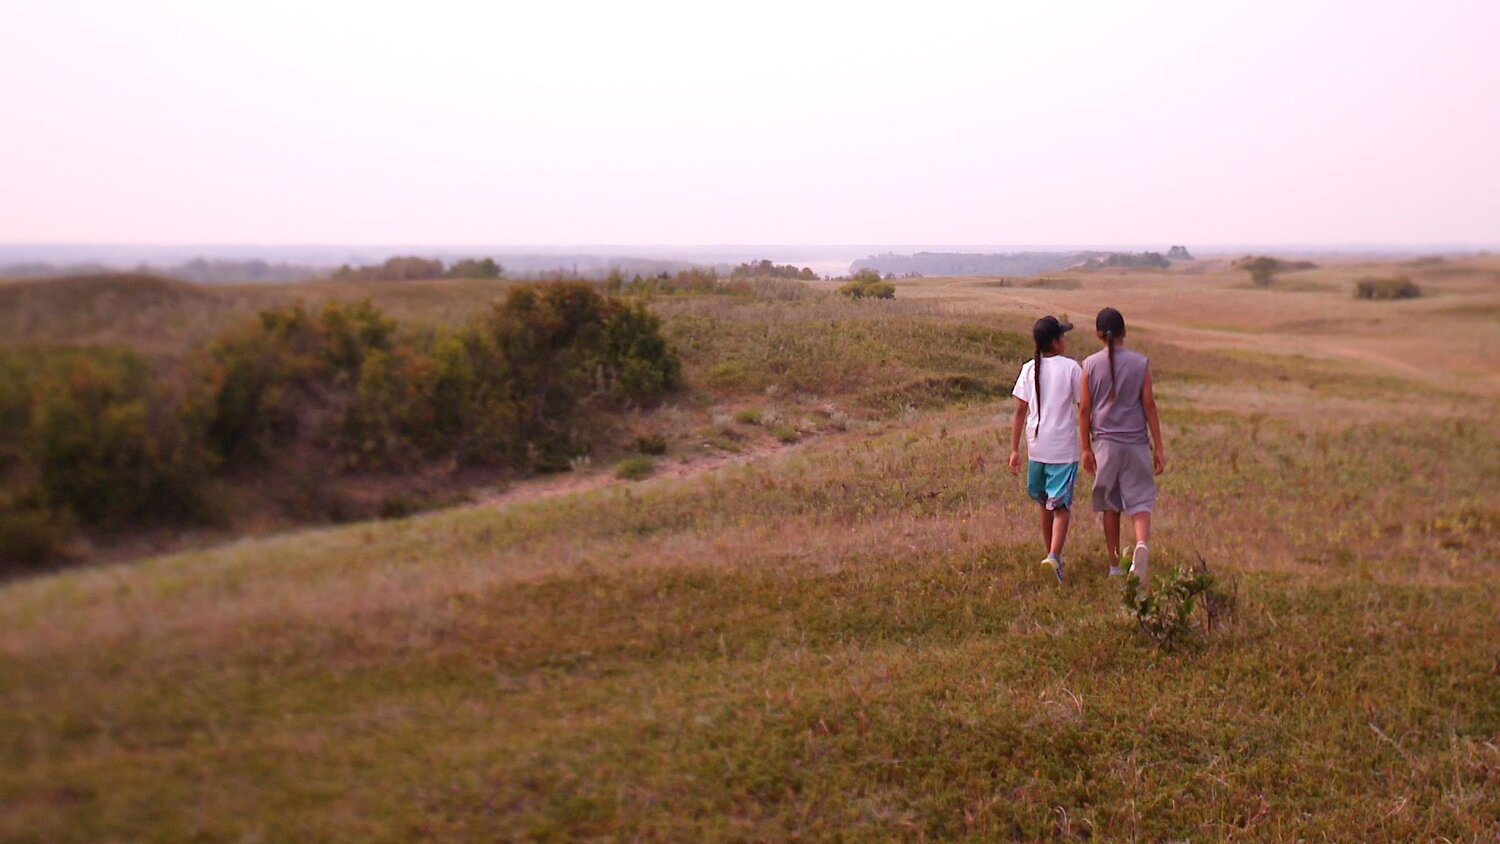 still Stand Up Tasha Hubbard | Canada 2019 - two young idigenous children walking in the prairies